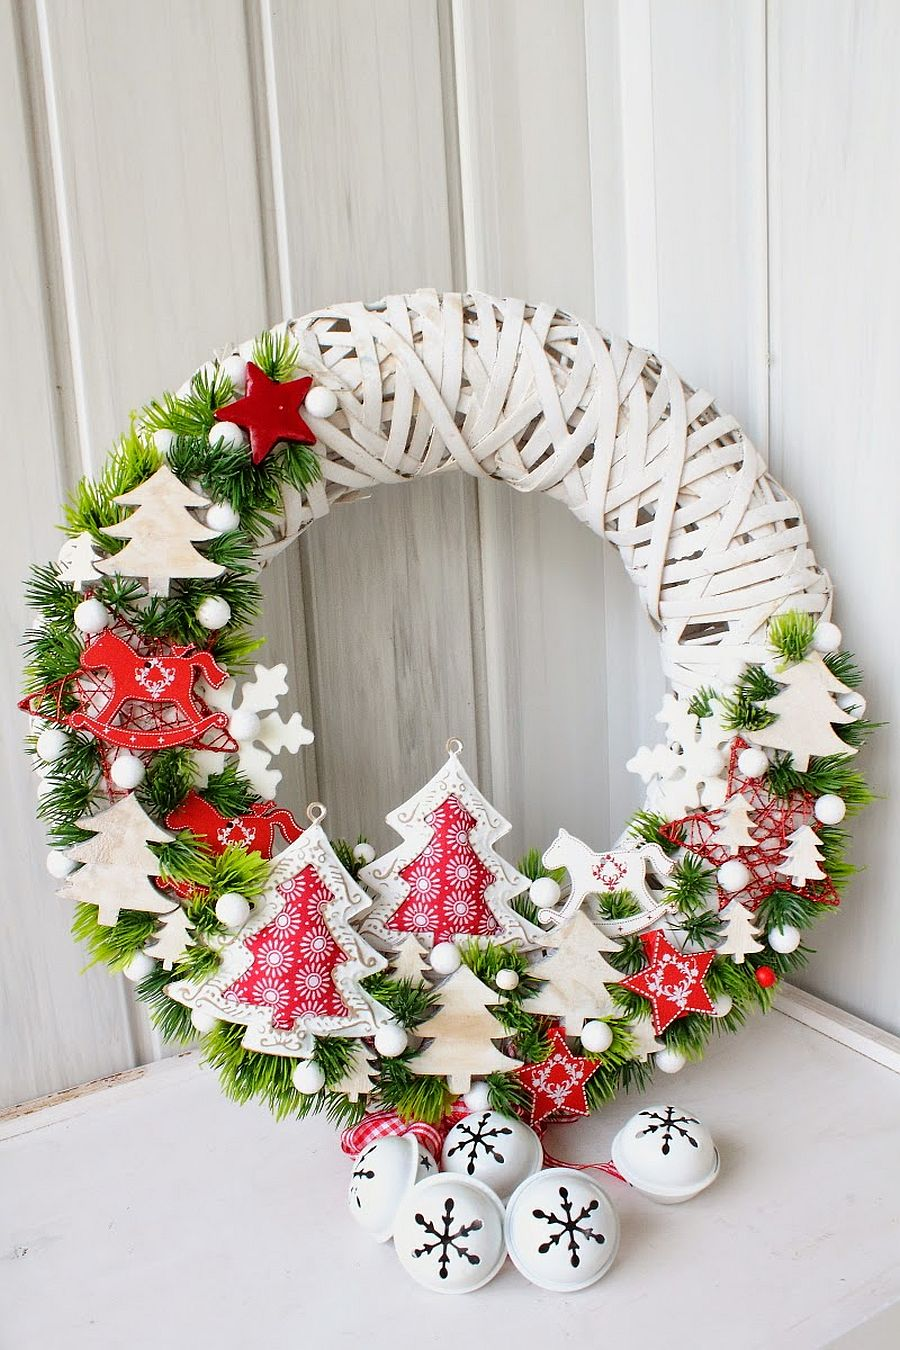 Incorporate winter motifs into the basic wreath for a Christmassy feel